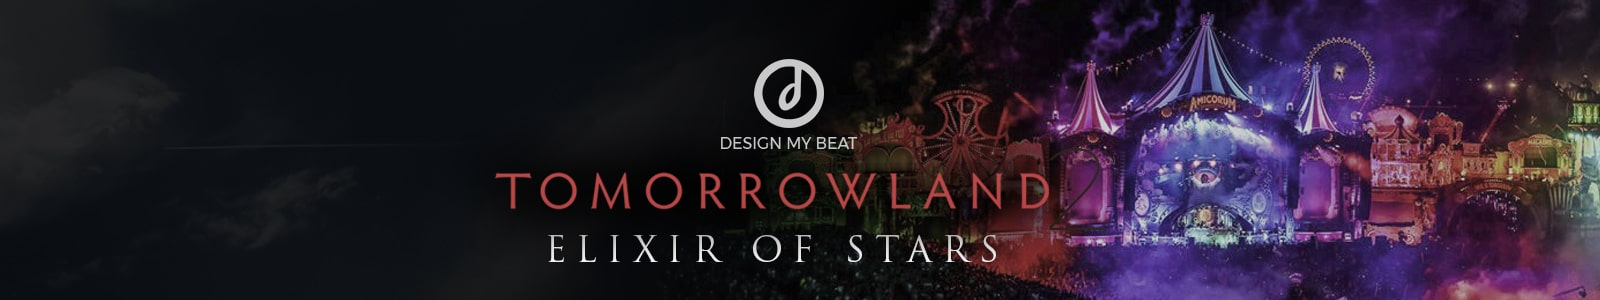 design my beat tomorrowland 2